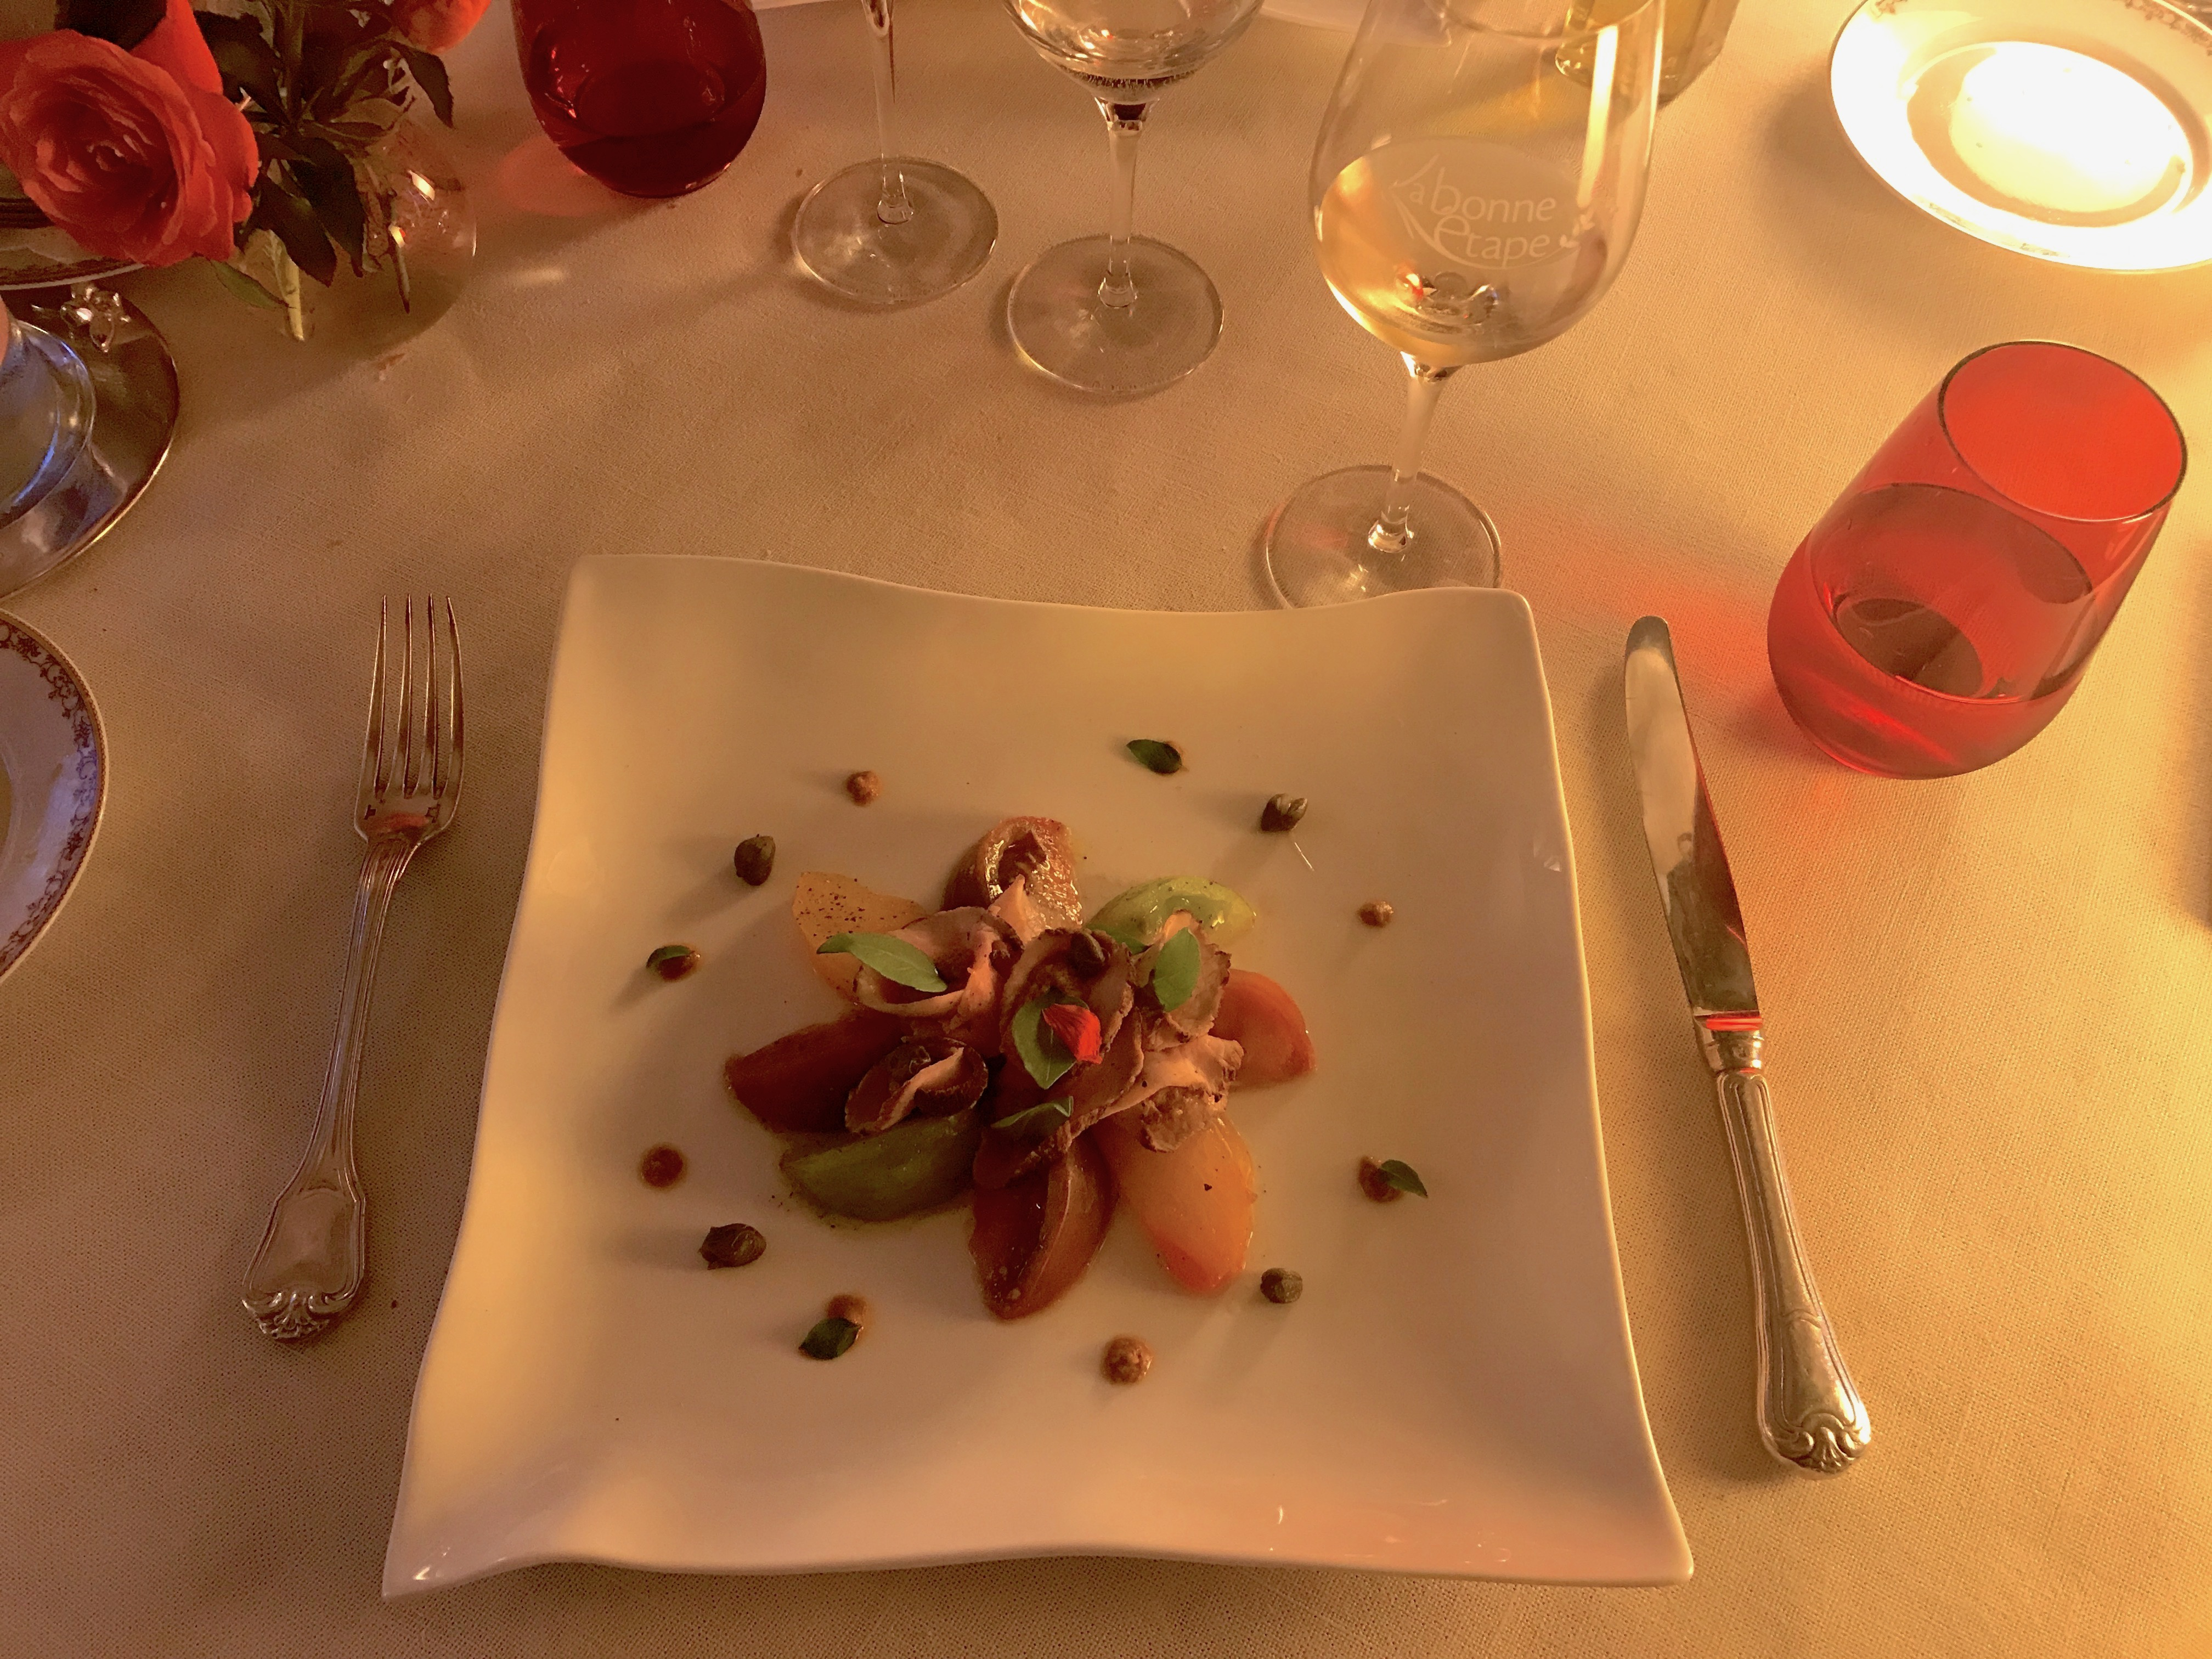 la-bonne-etape-restaurant-lustforthesublime